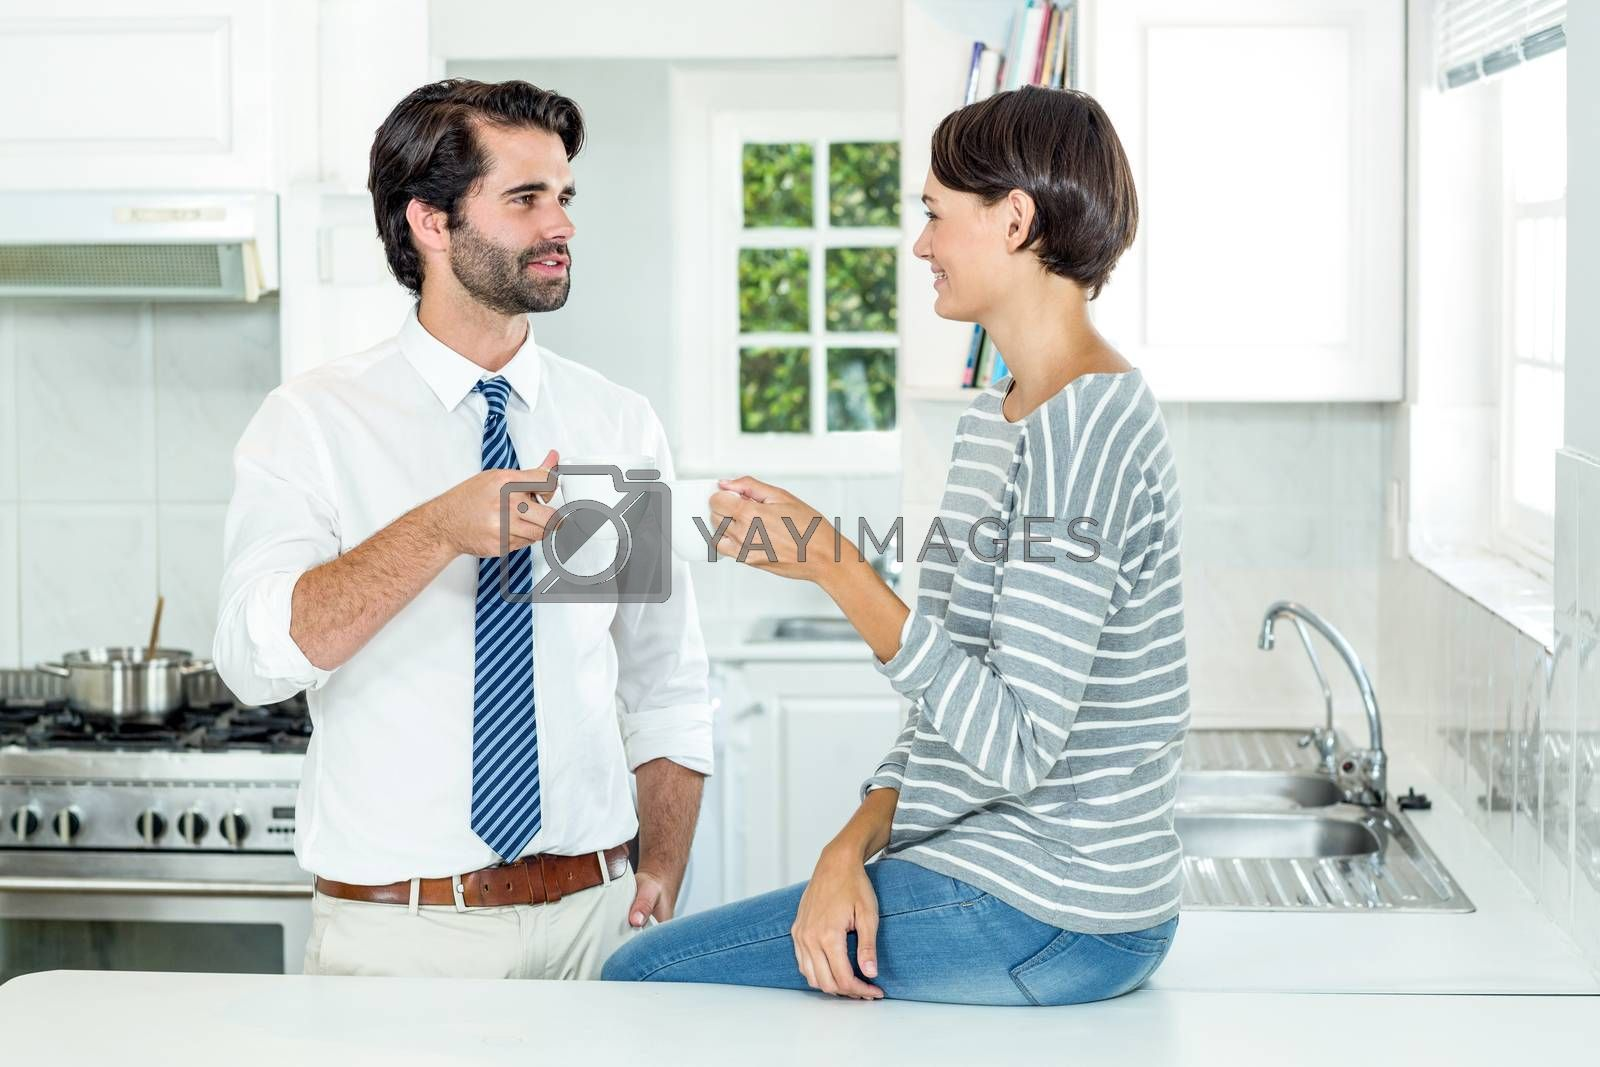 Royalty free image of Woman interacting with businessman during coffee break by Wavebreakmedia